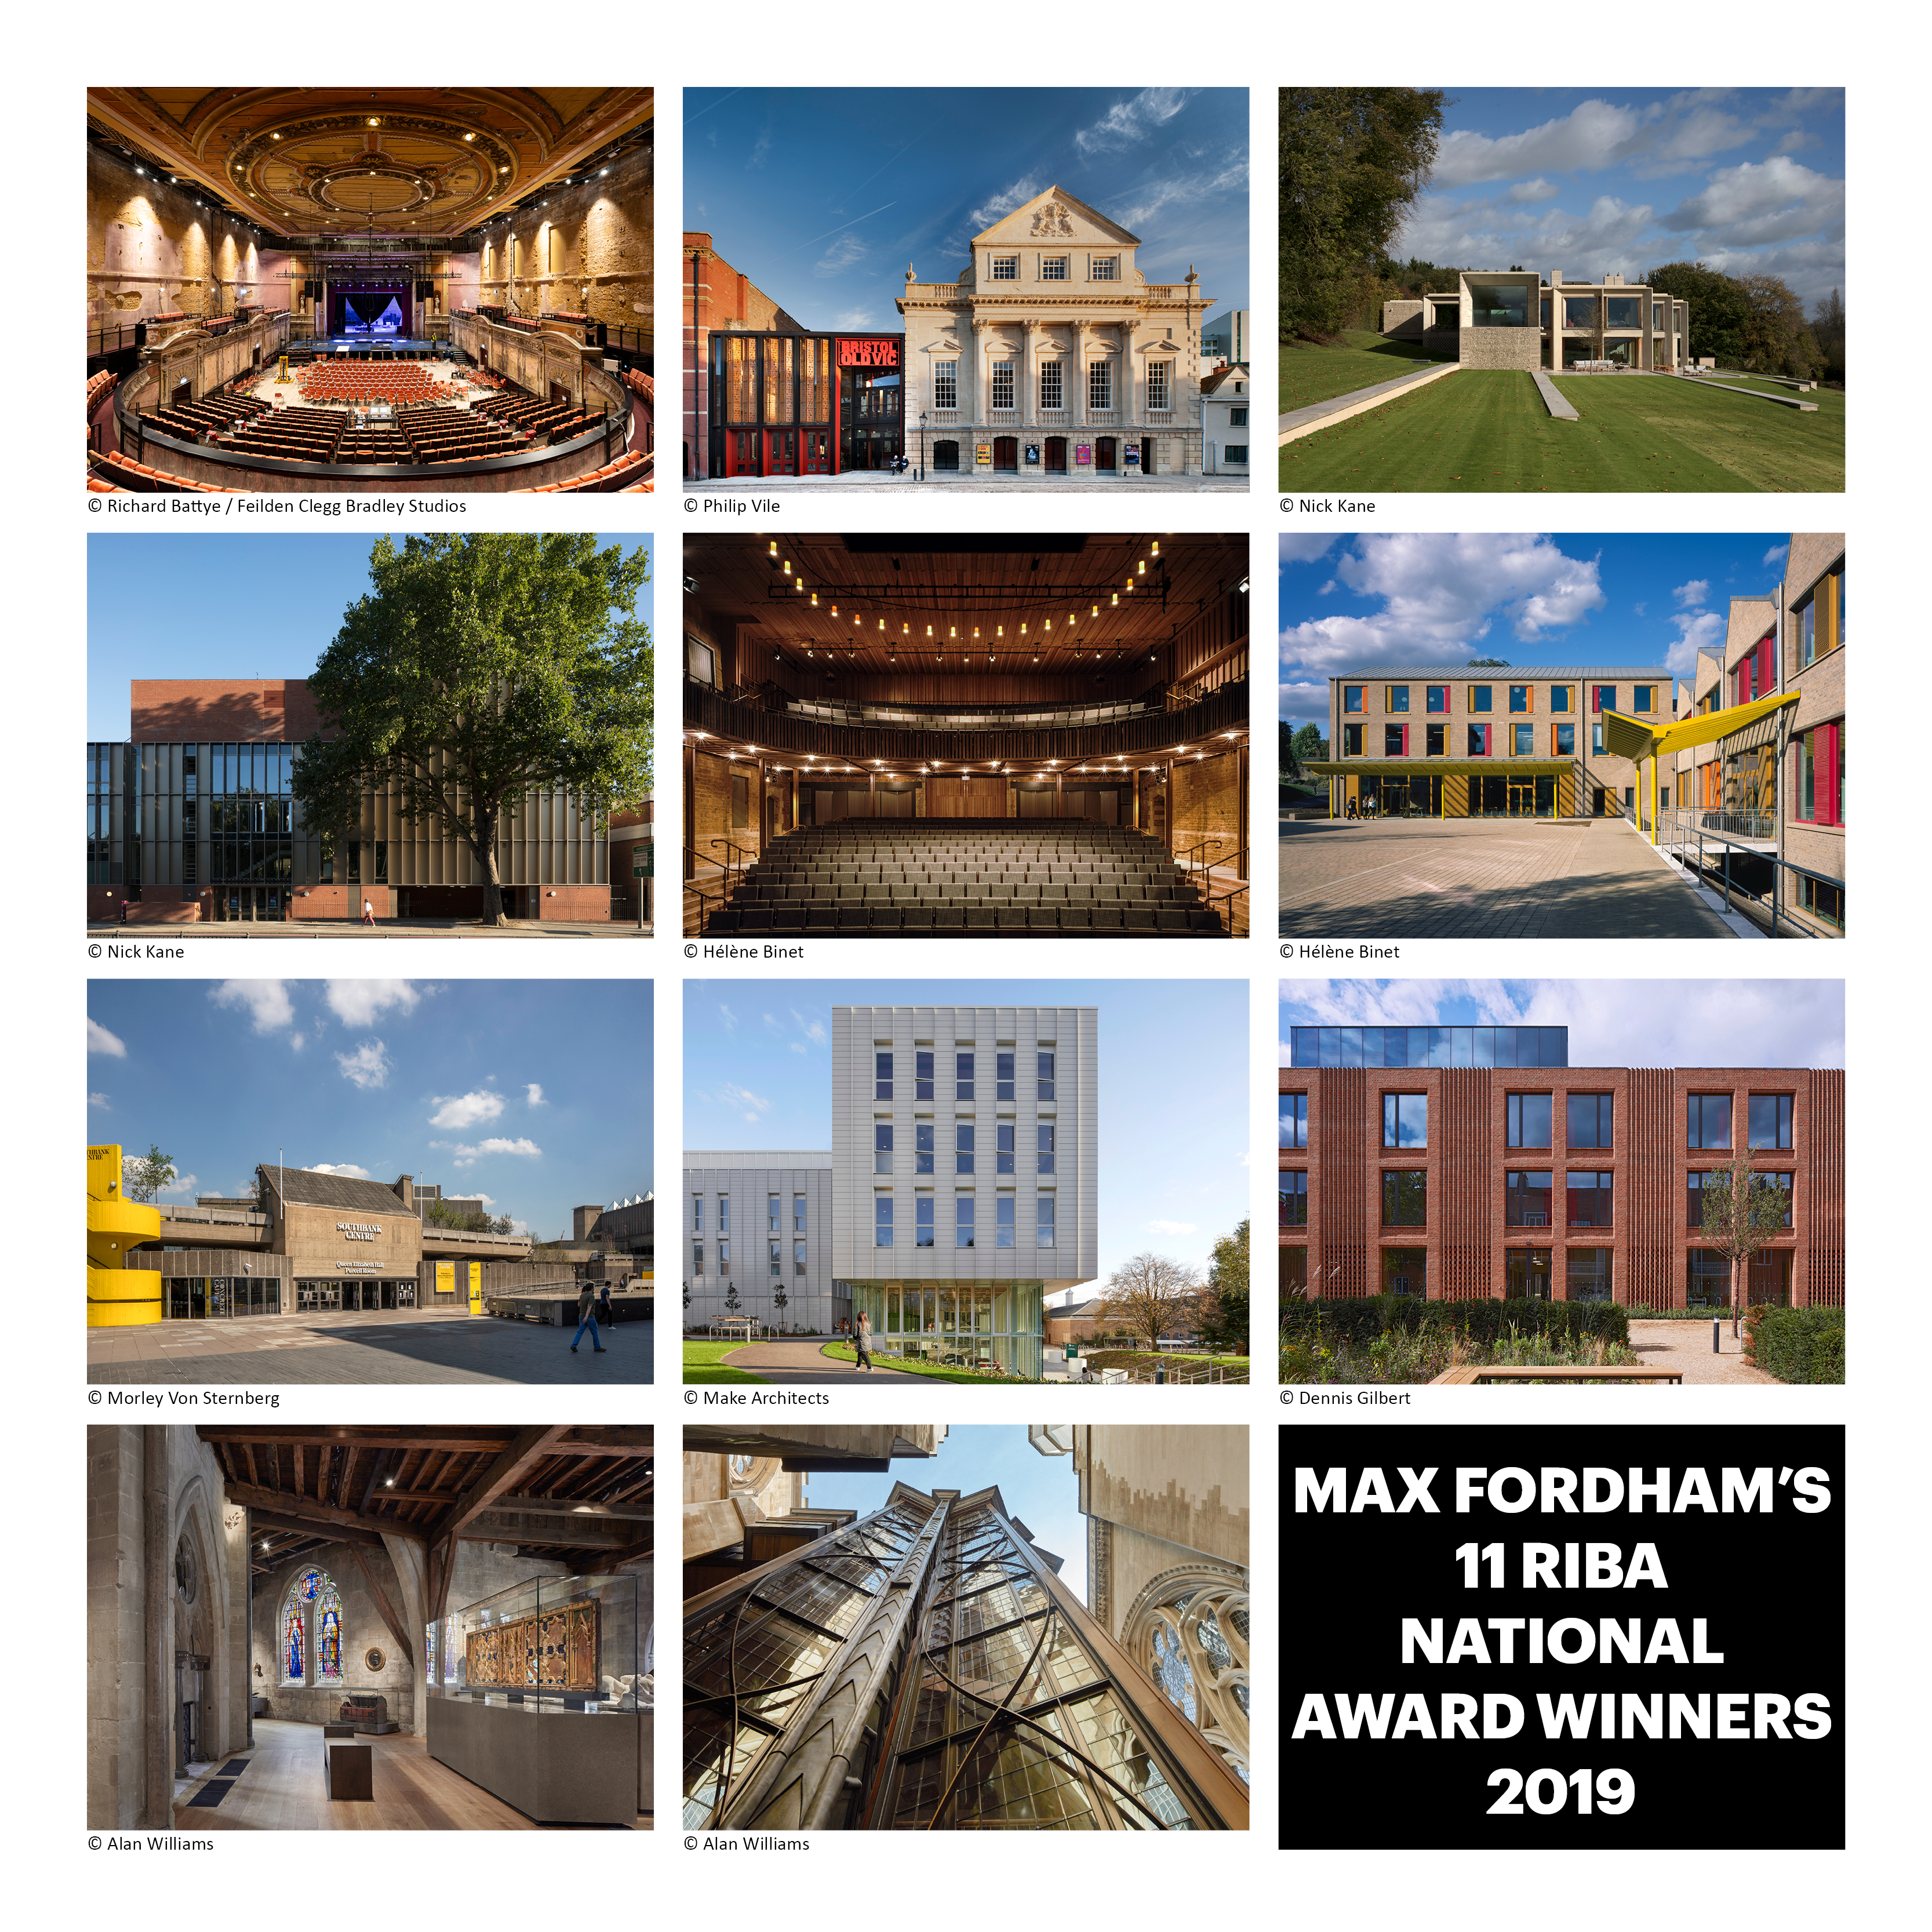 Max Fordham's 11 RIBA National Award Winners 2019